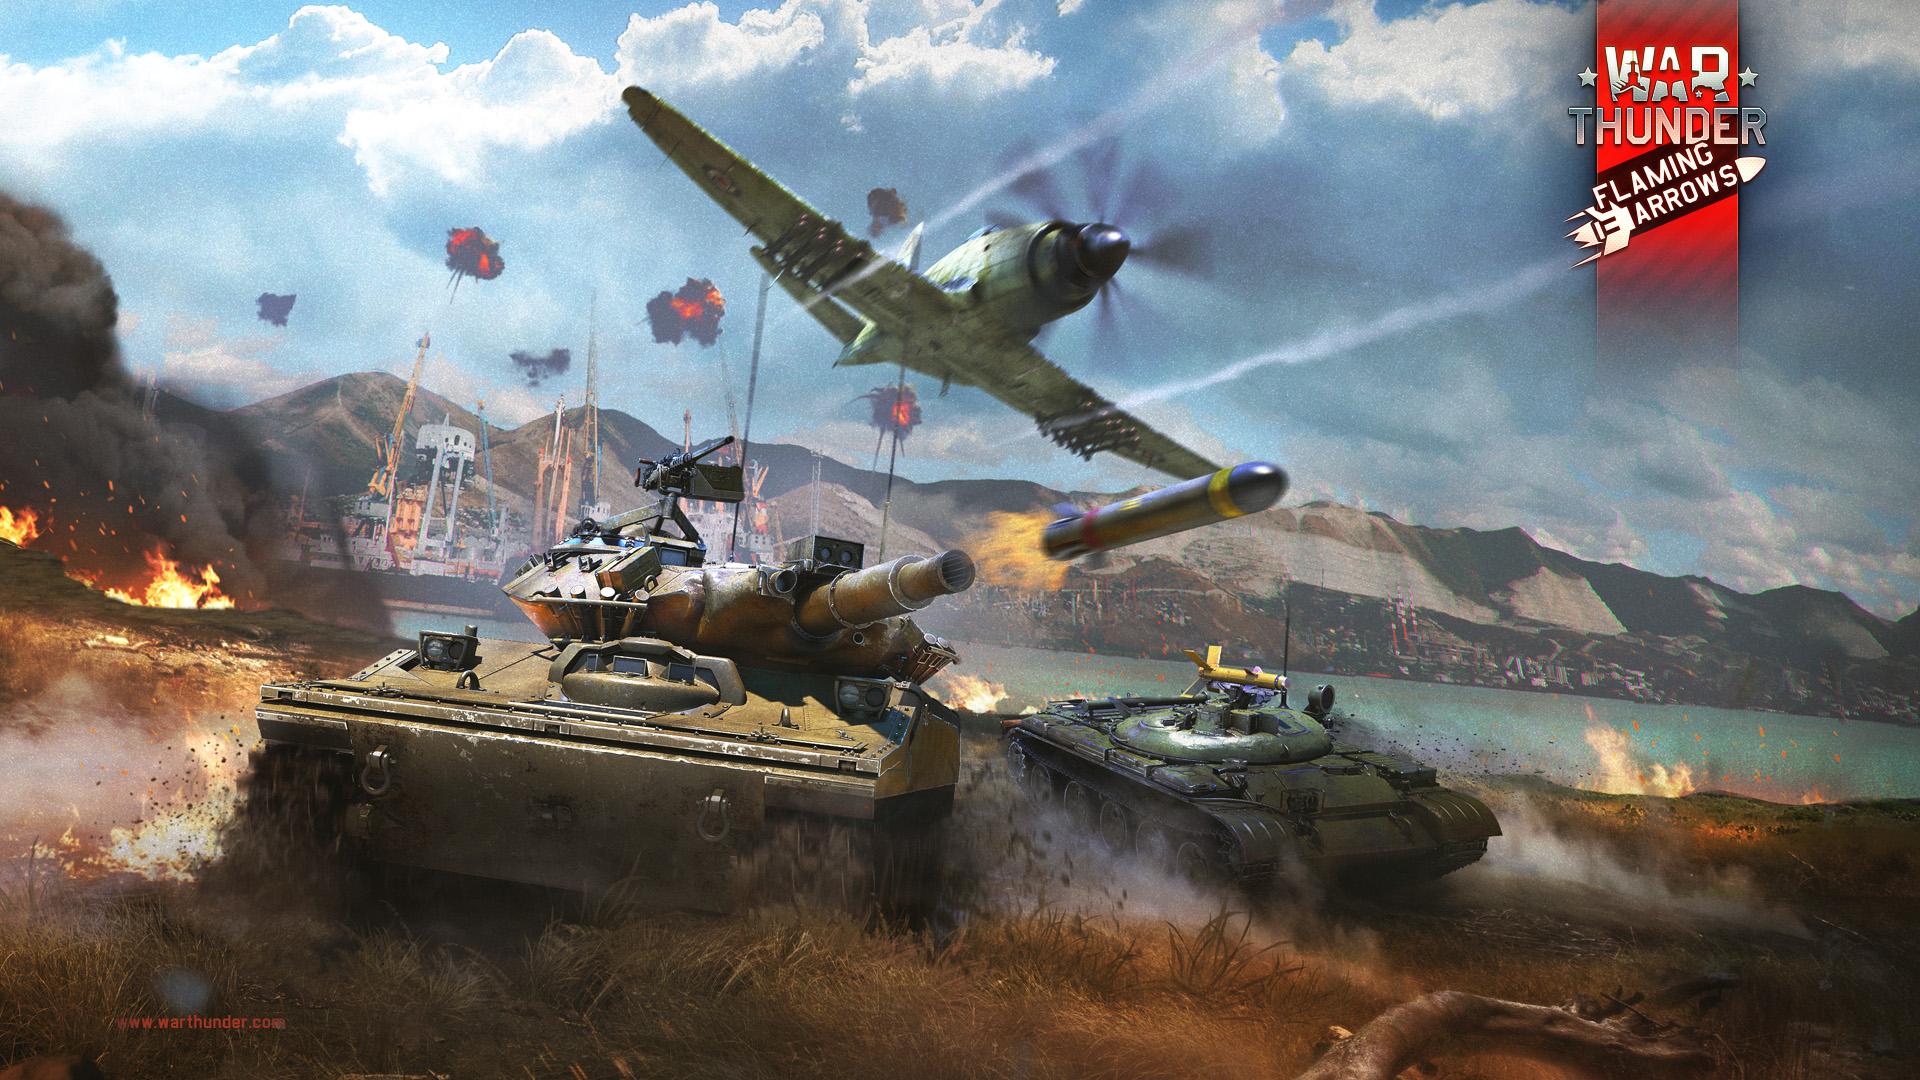 WAR THUNDER CONFIRMED LAUNCH ON XBOX ONE